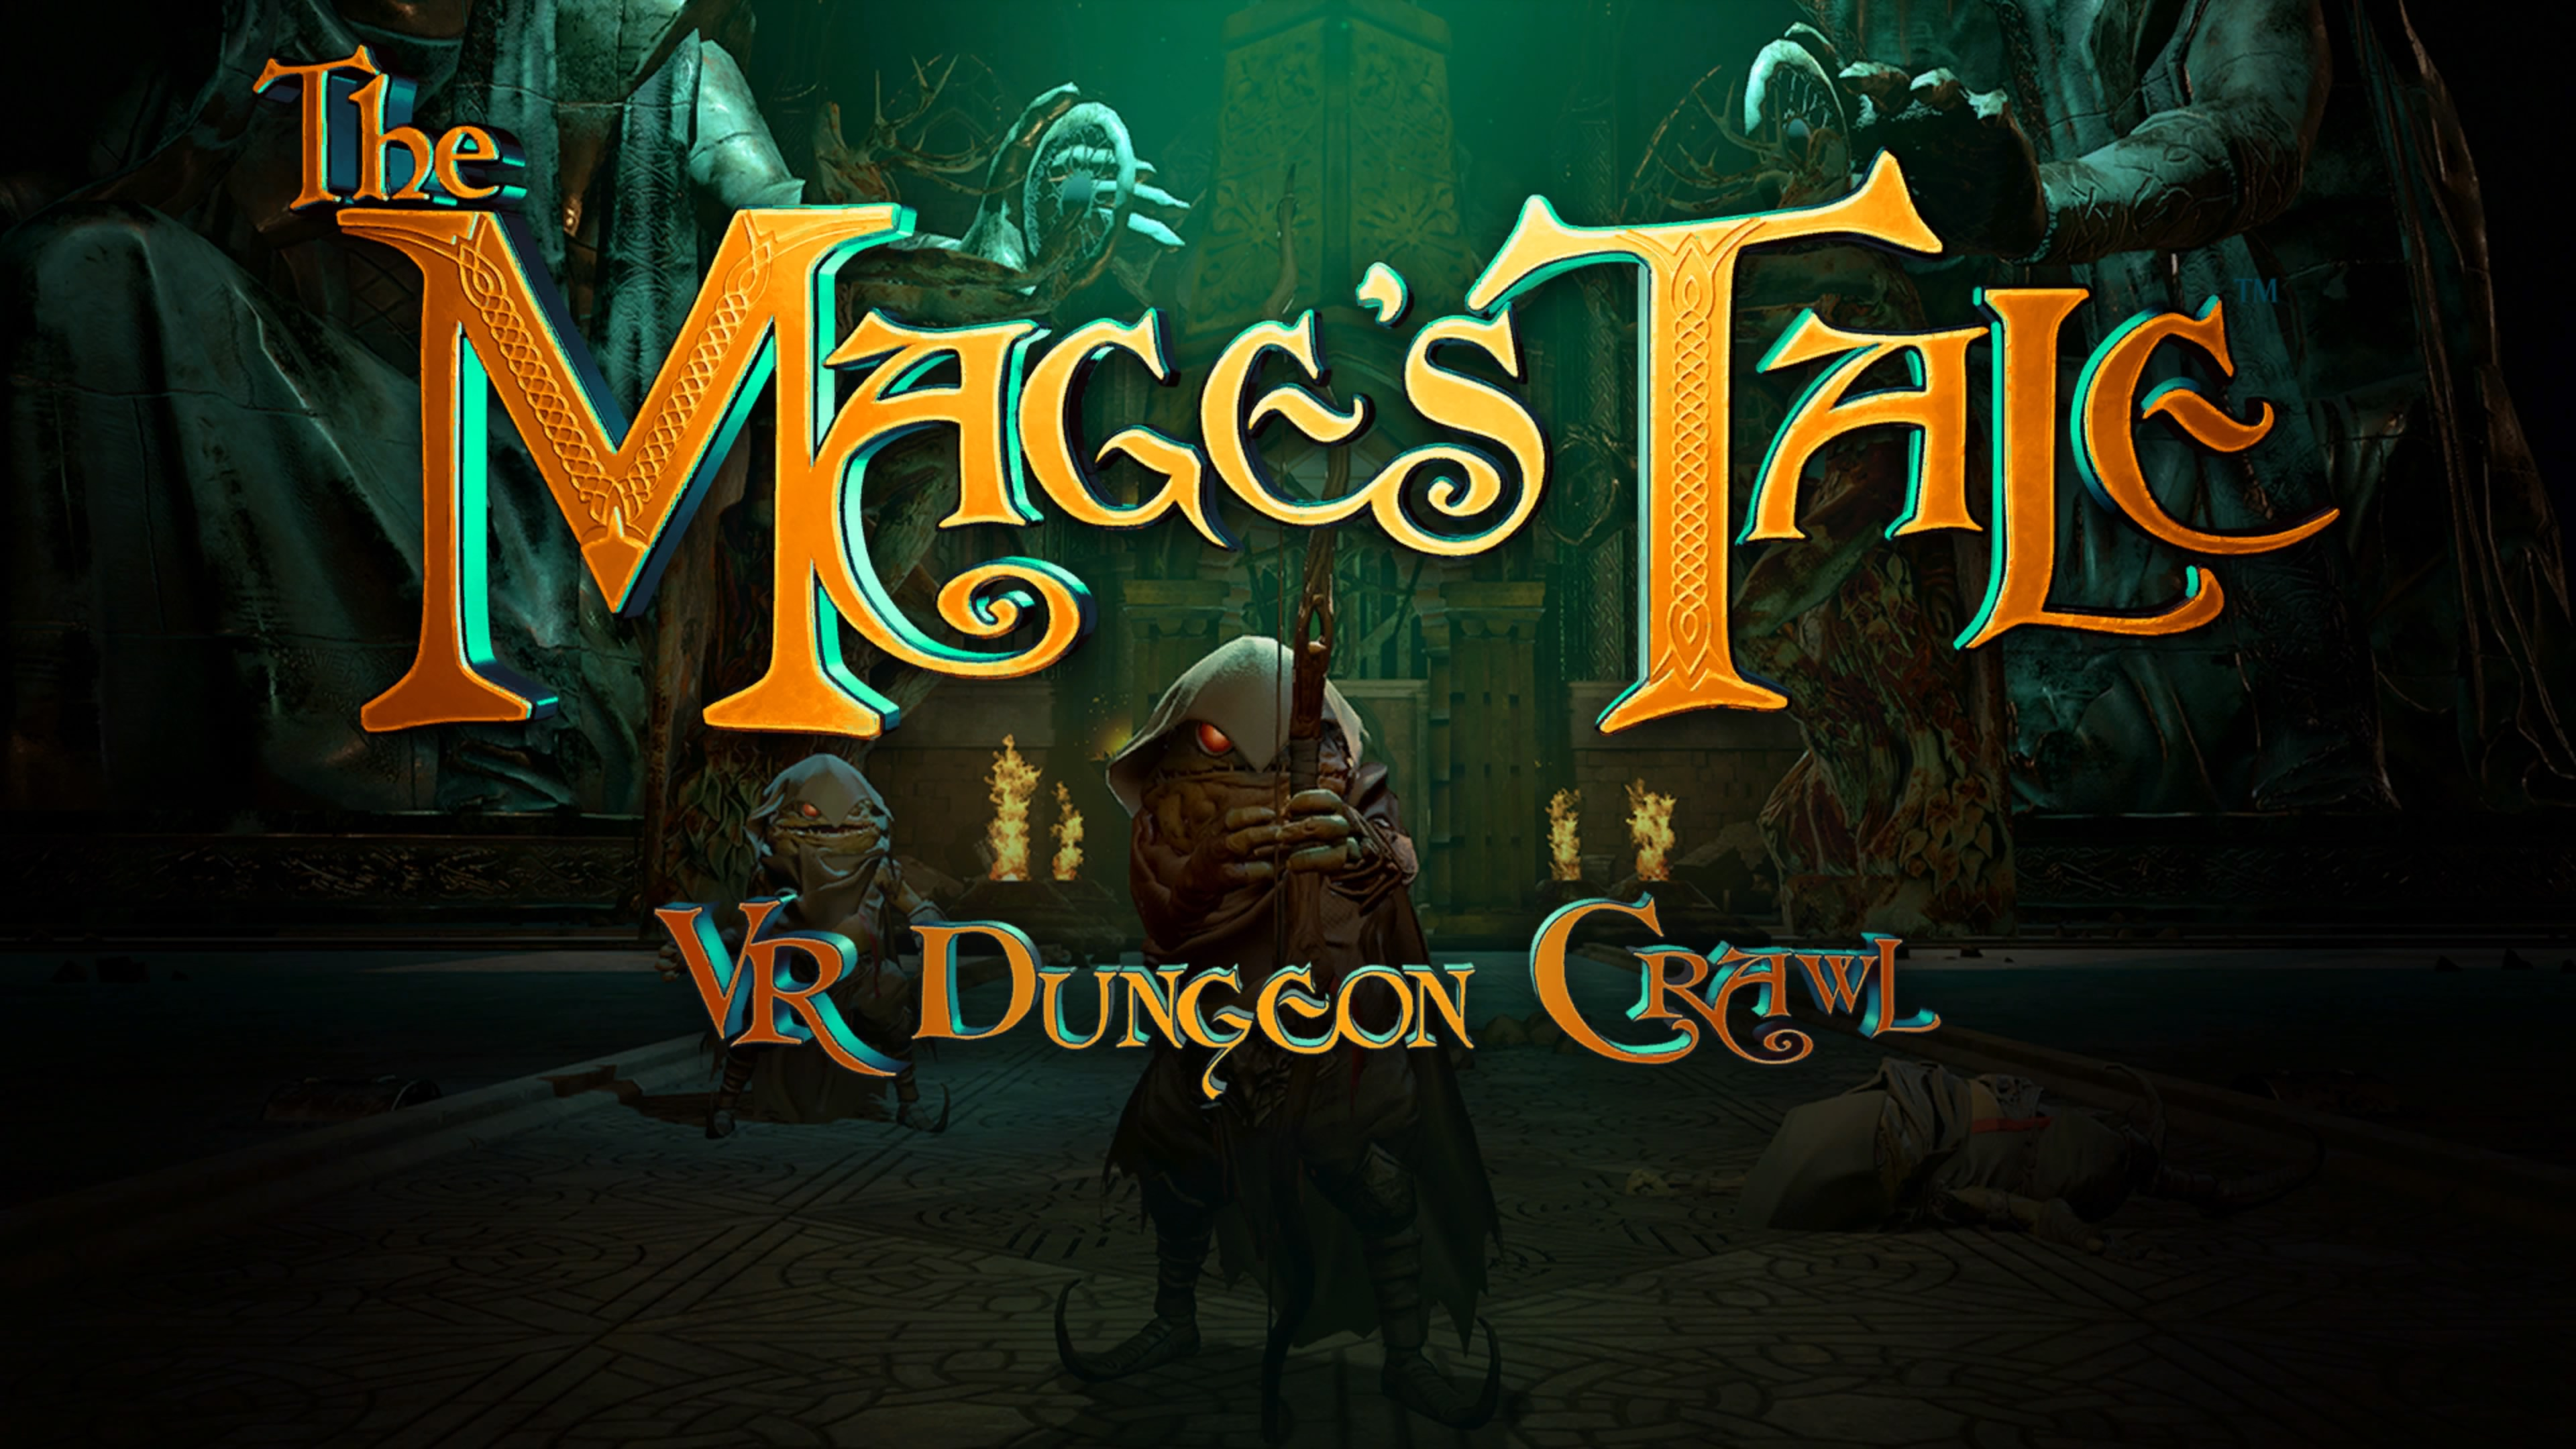 Review - The Mage's Tale